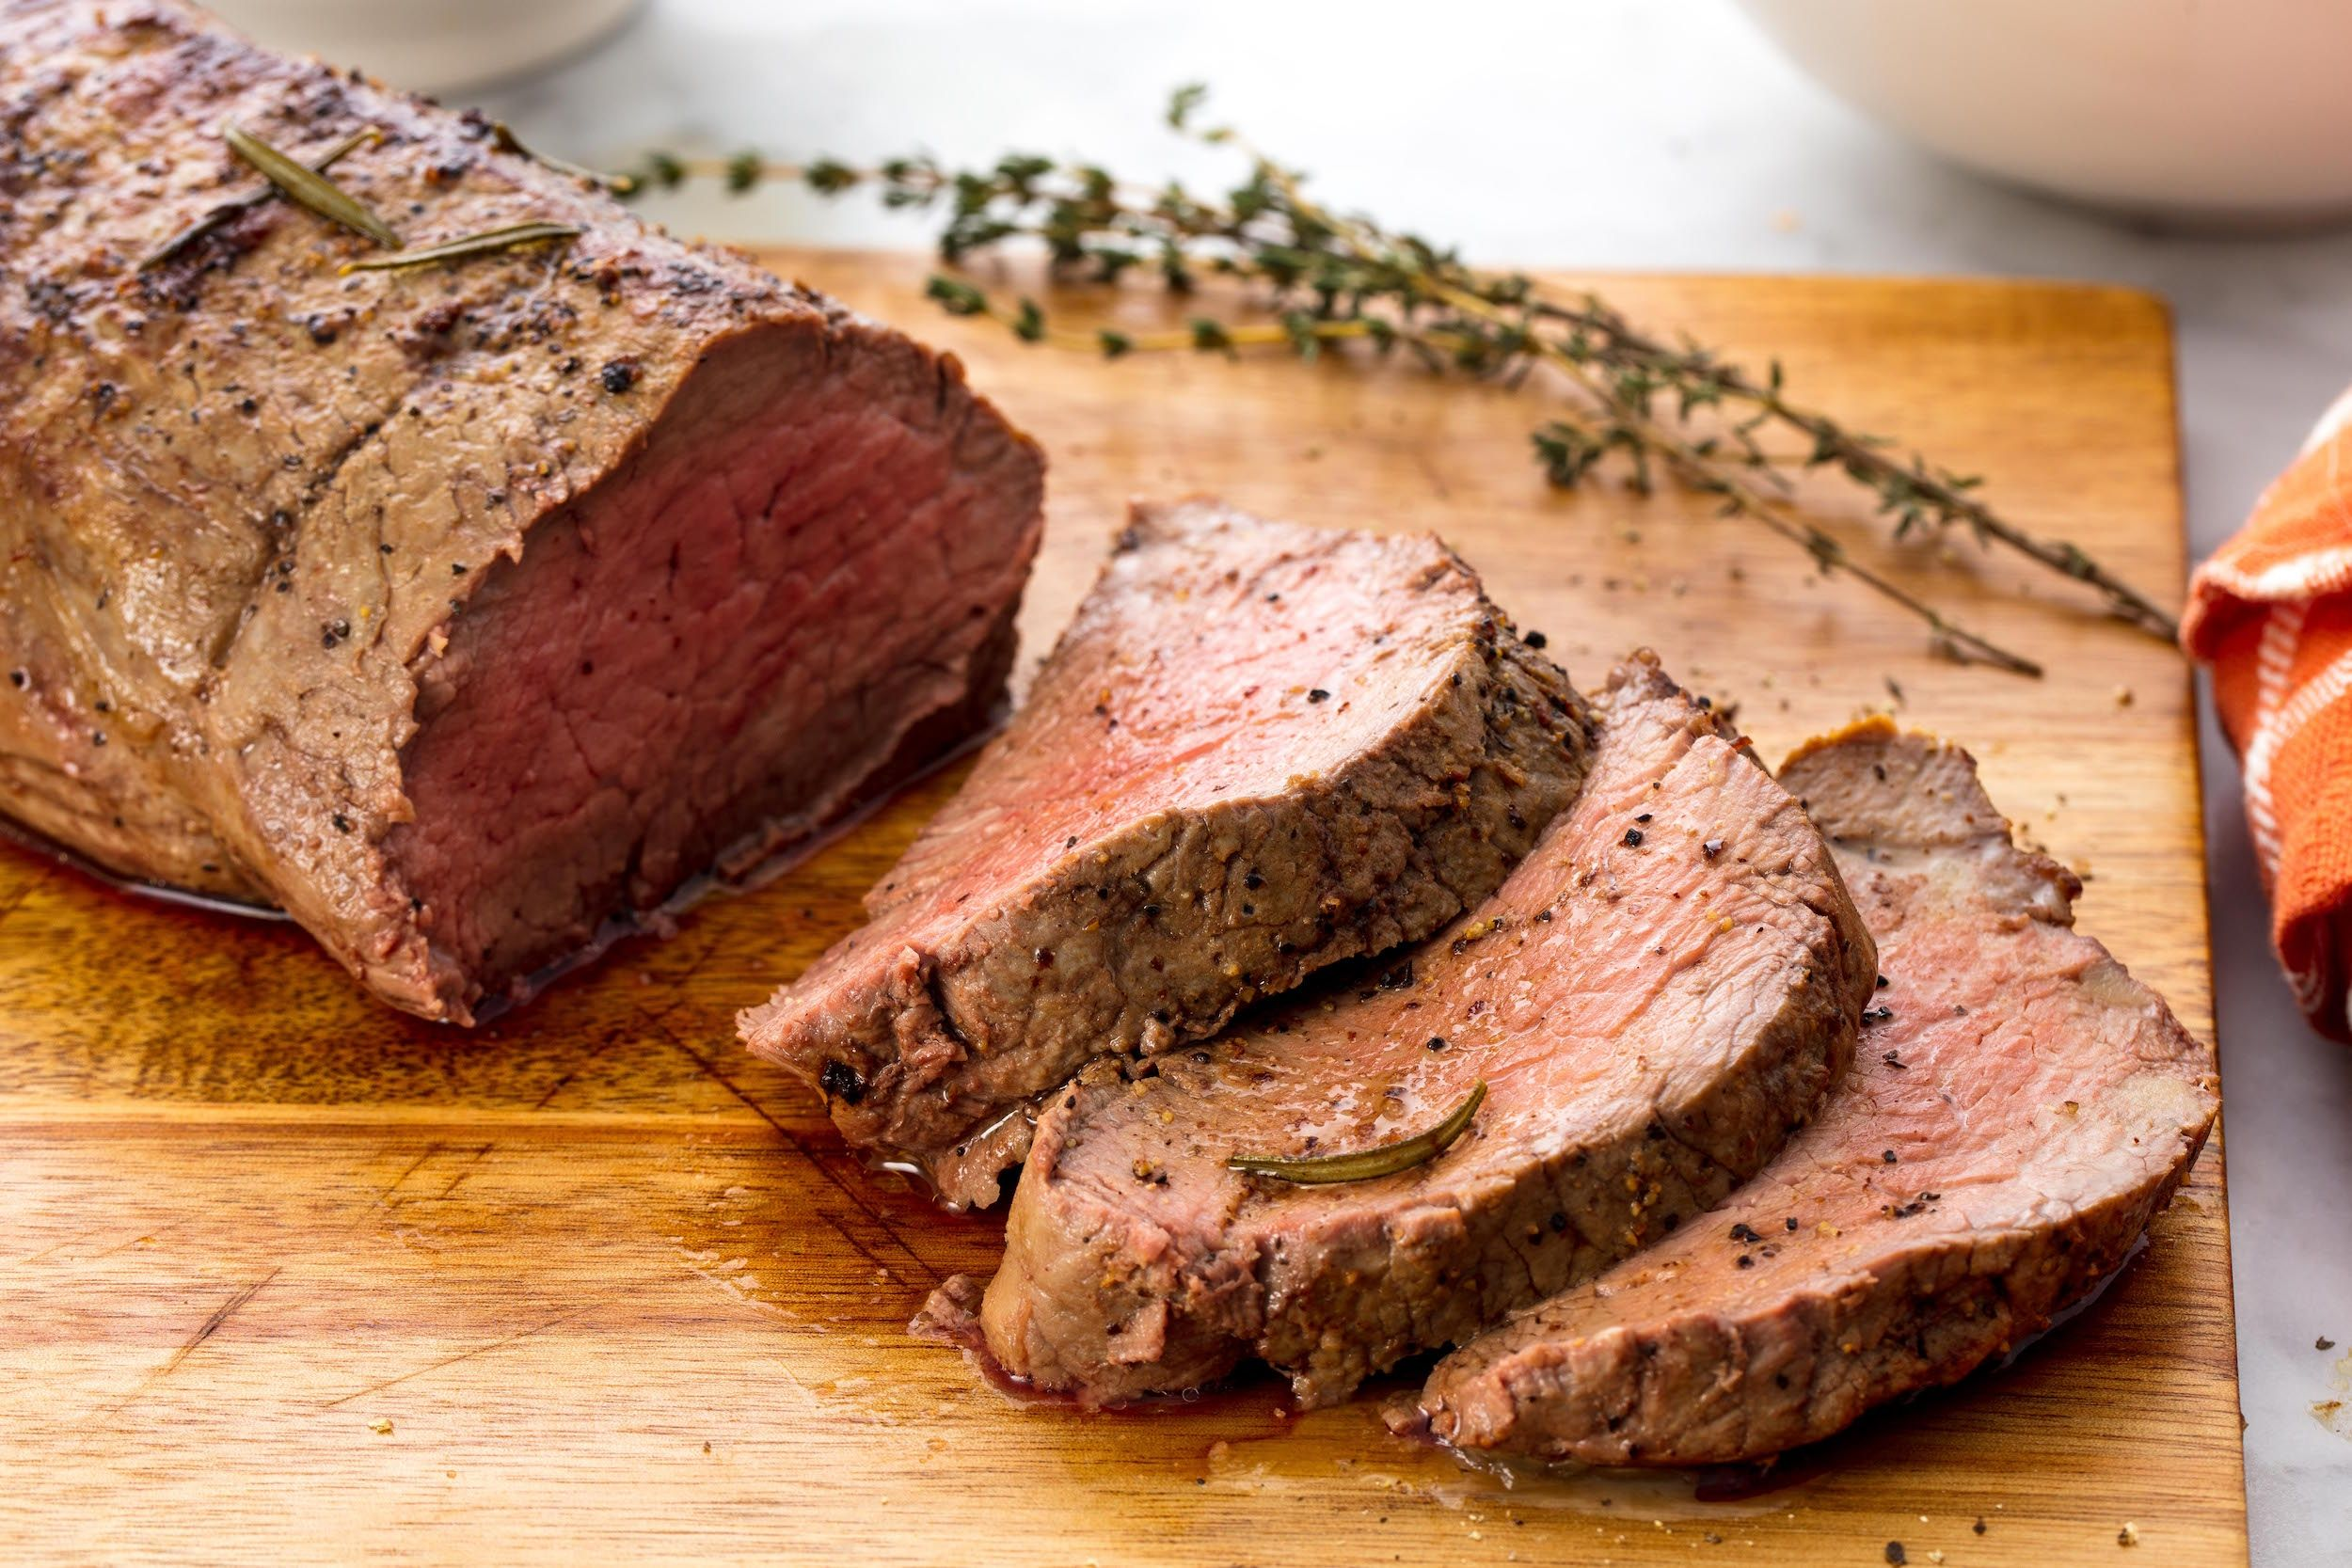 Best Beef Tenderloin Recipe How To Cook A Beef Tenderloin In The Oven